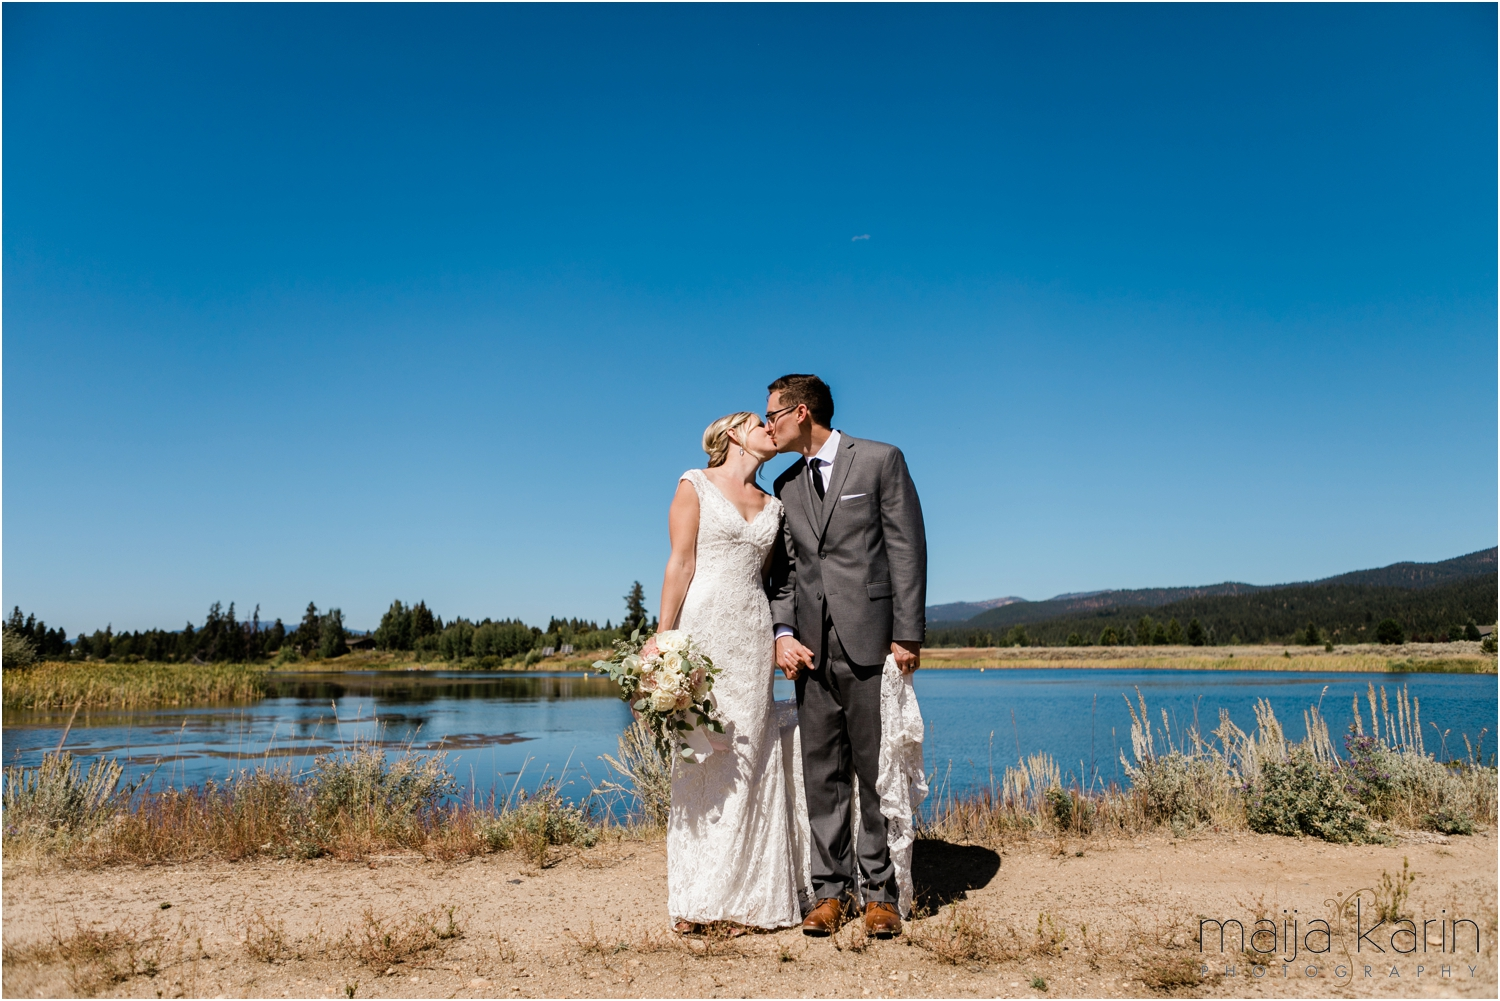 McCall-Idaho-Wedding-Maija-Karin-Photography_0021.jpg